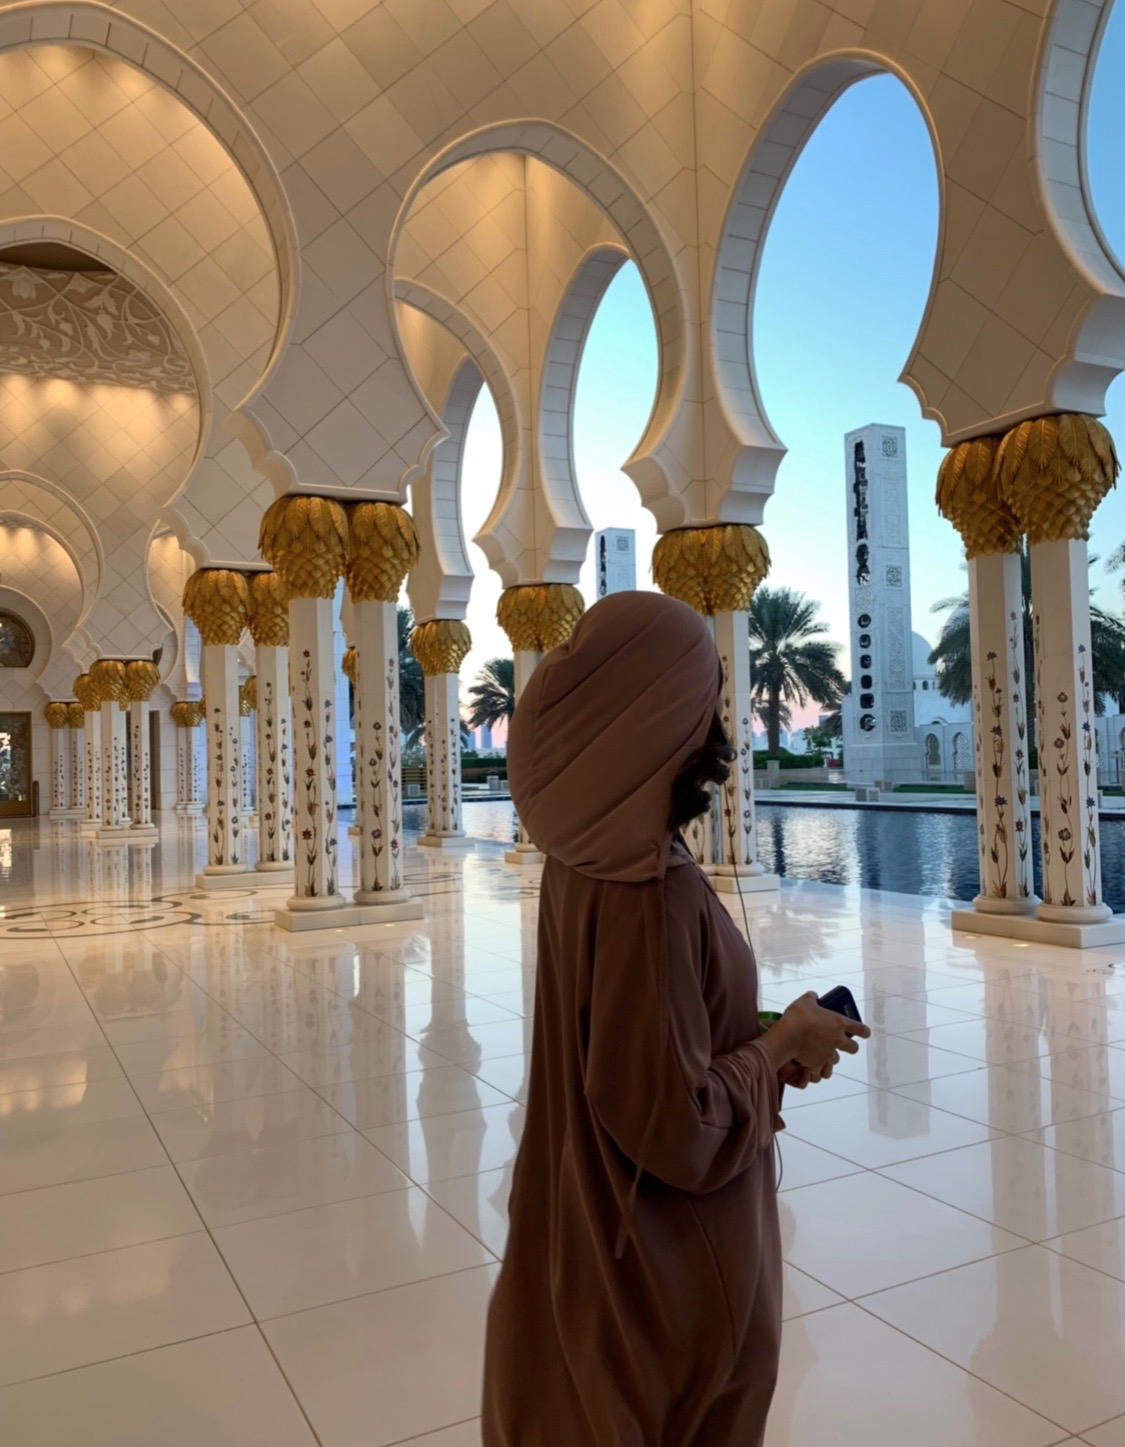 Sheikh Zayed Grand Mosque by @nakslee